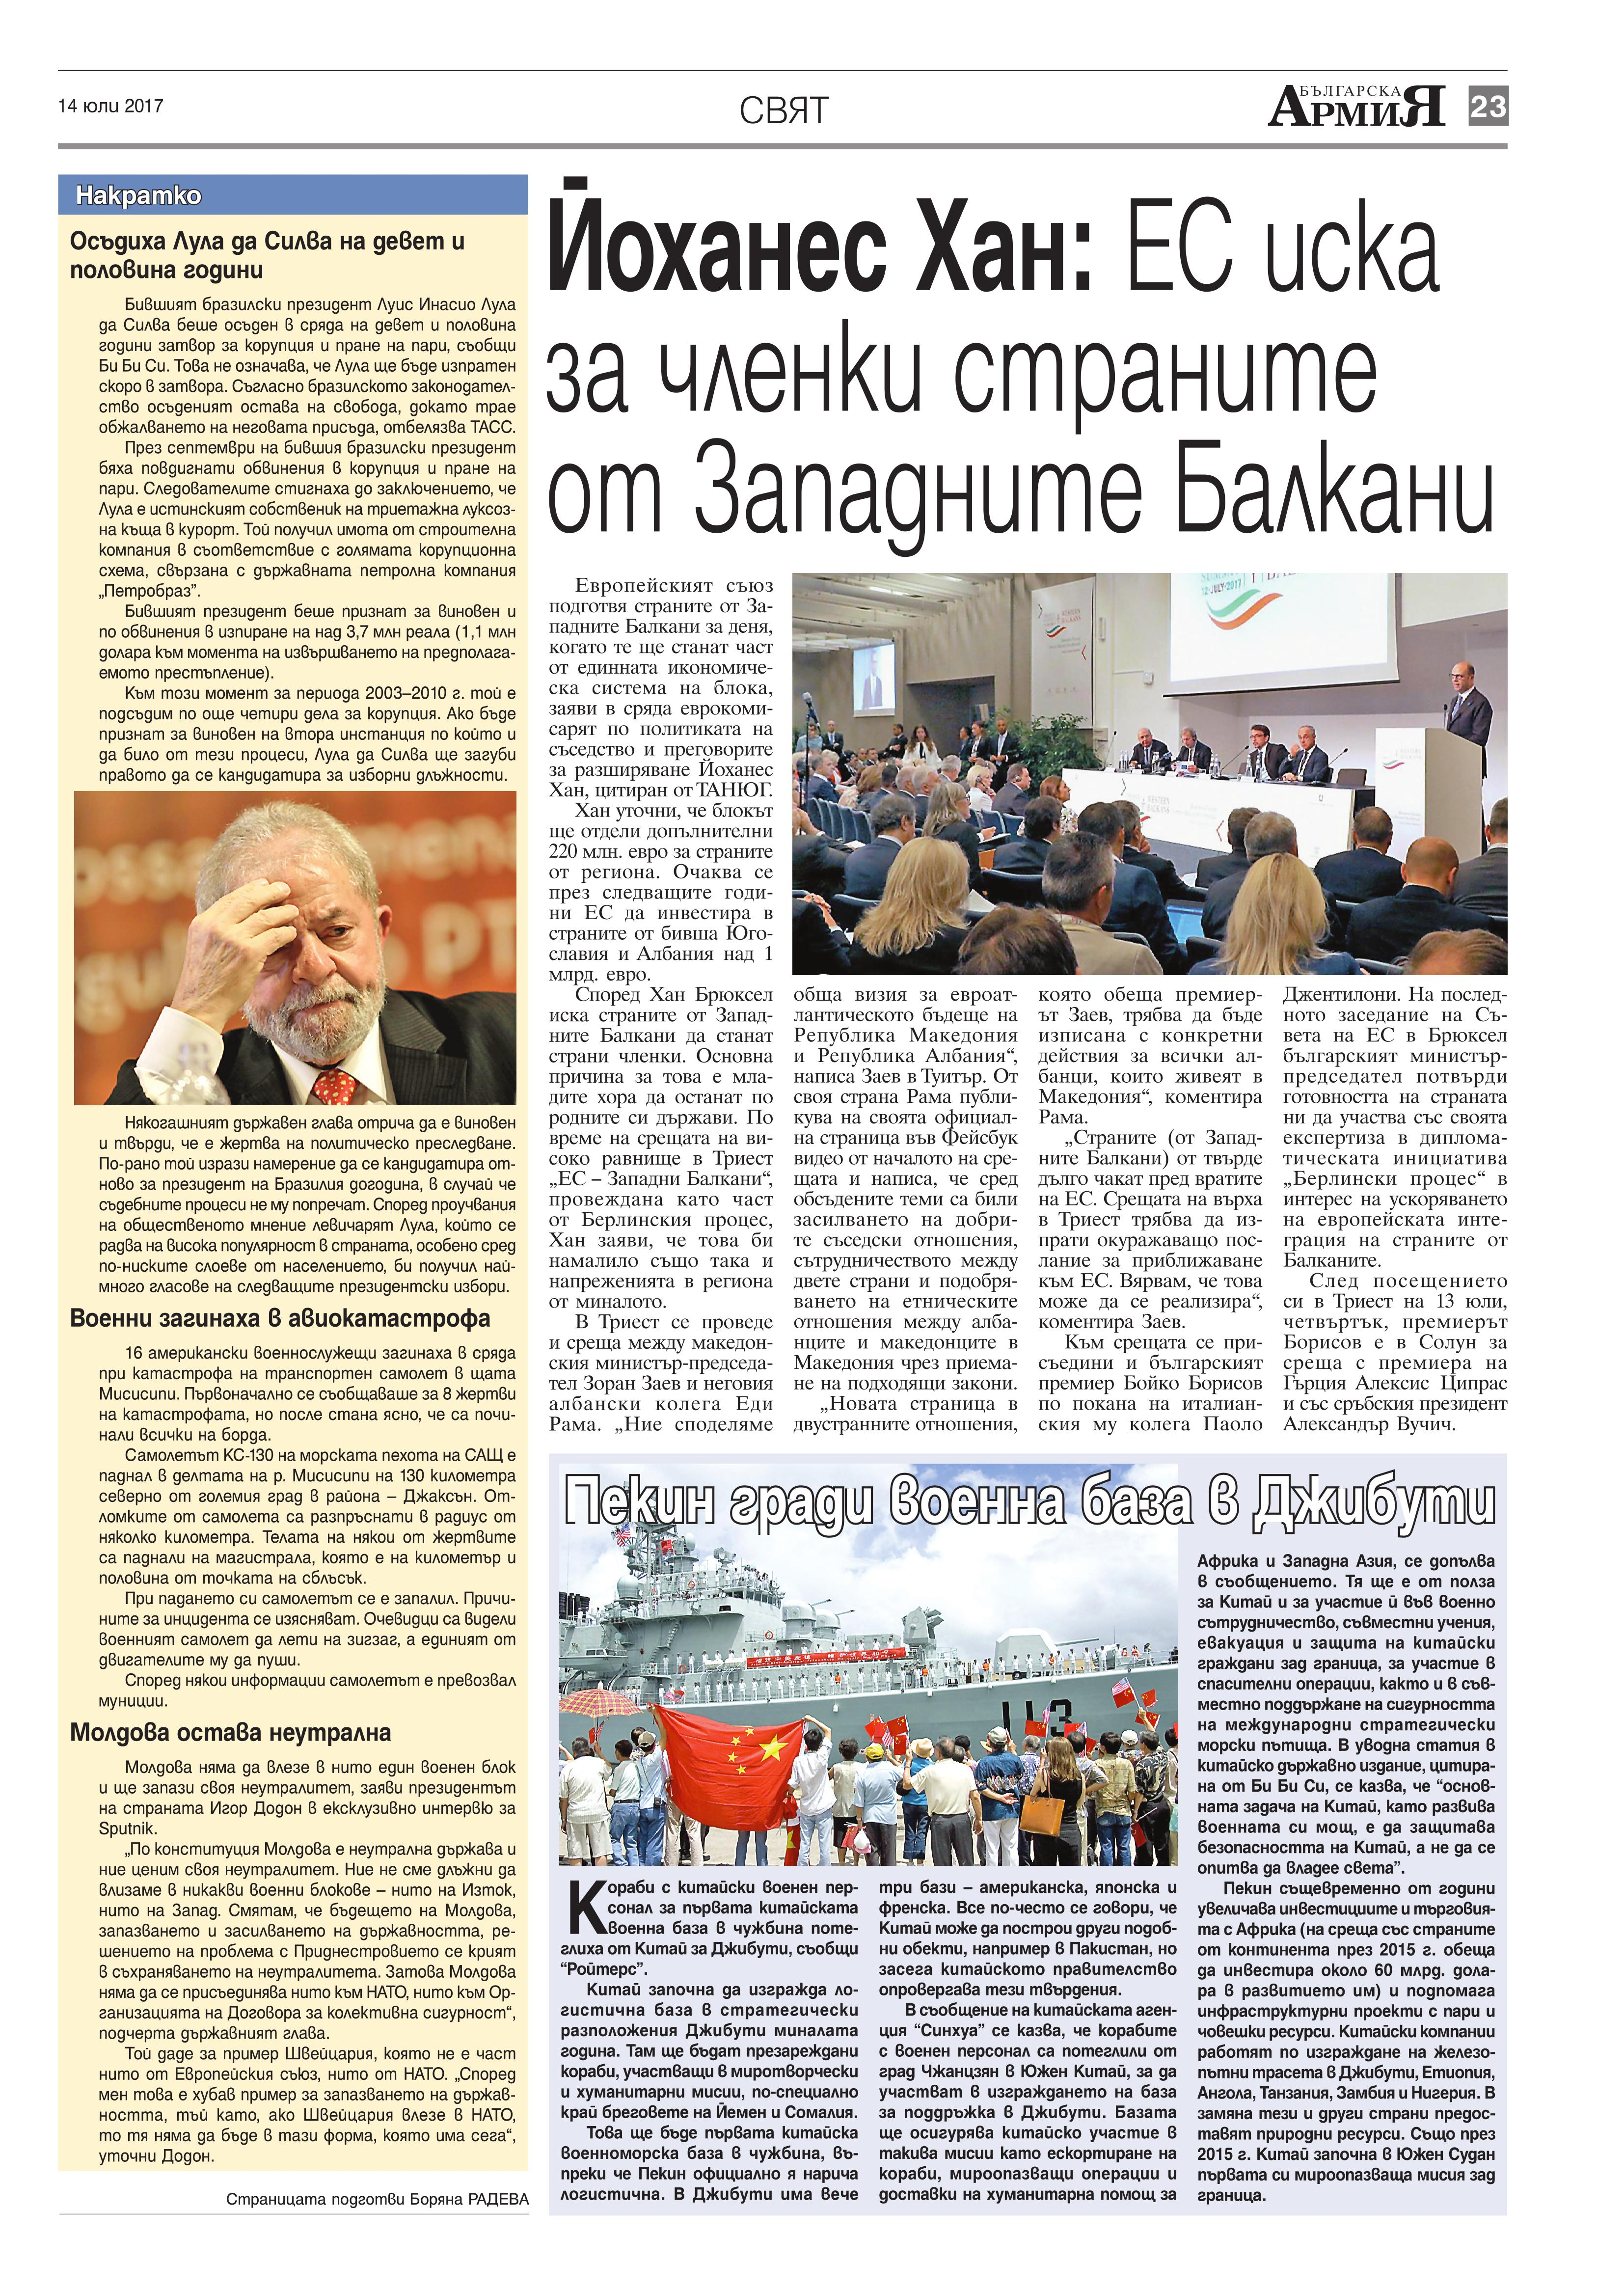 https://www.armymedia.bg/wp-content/uploads/2015/06/23.page1_-25.jpg